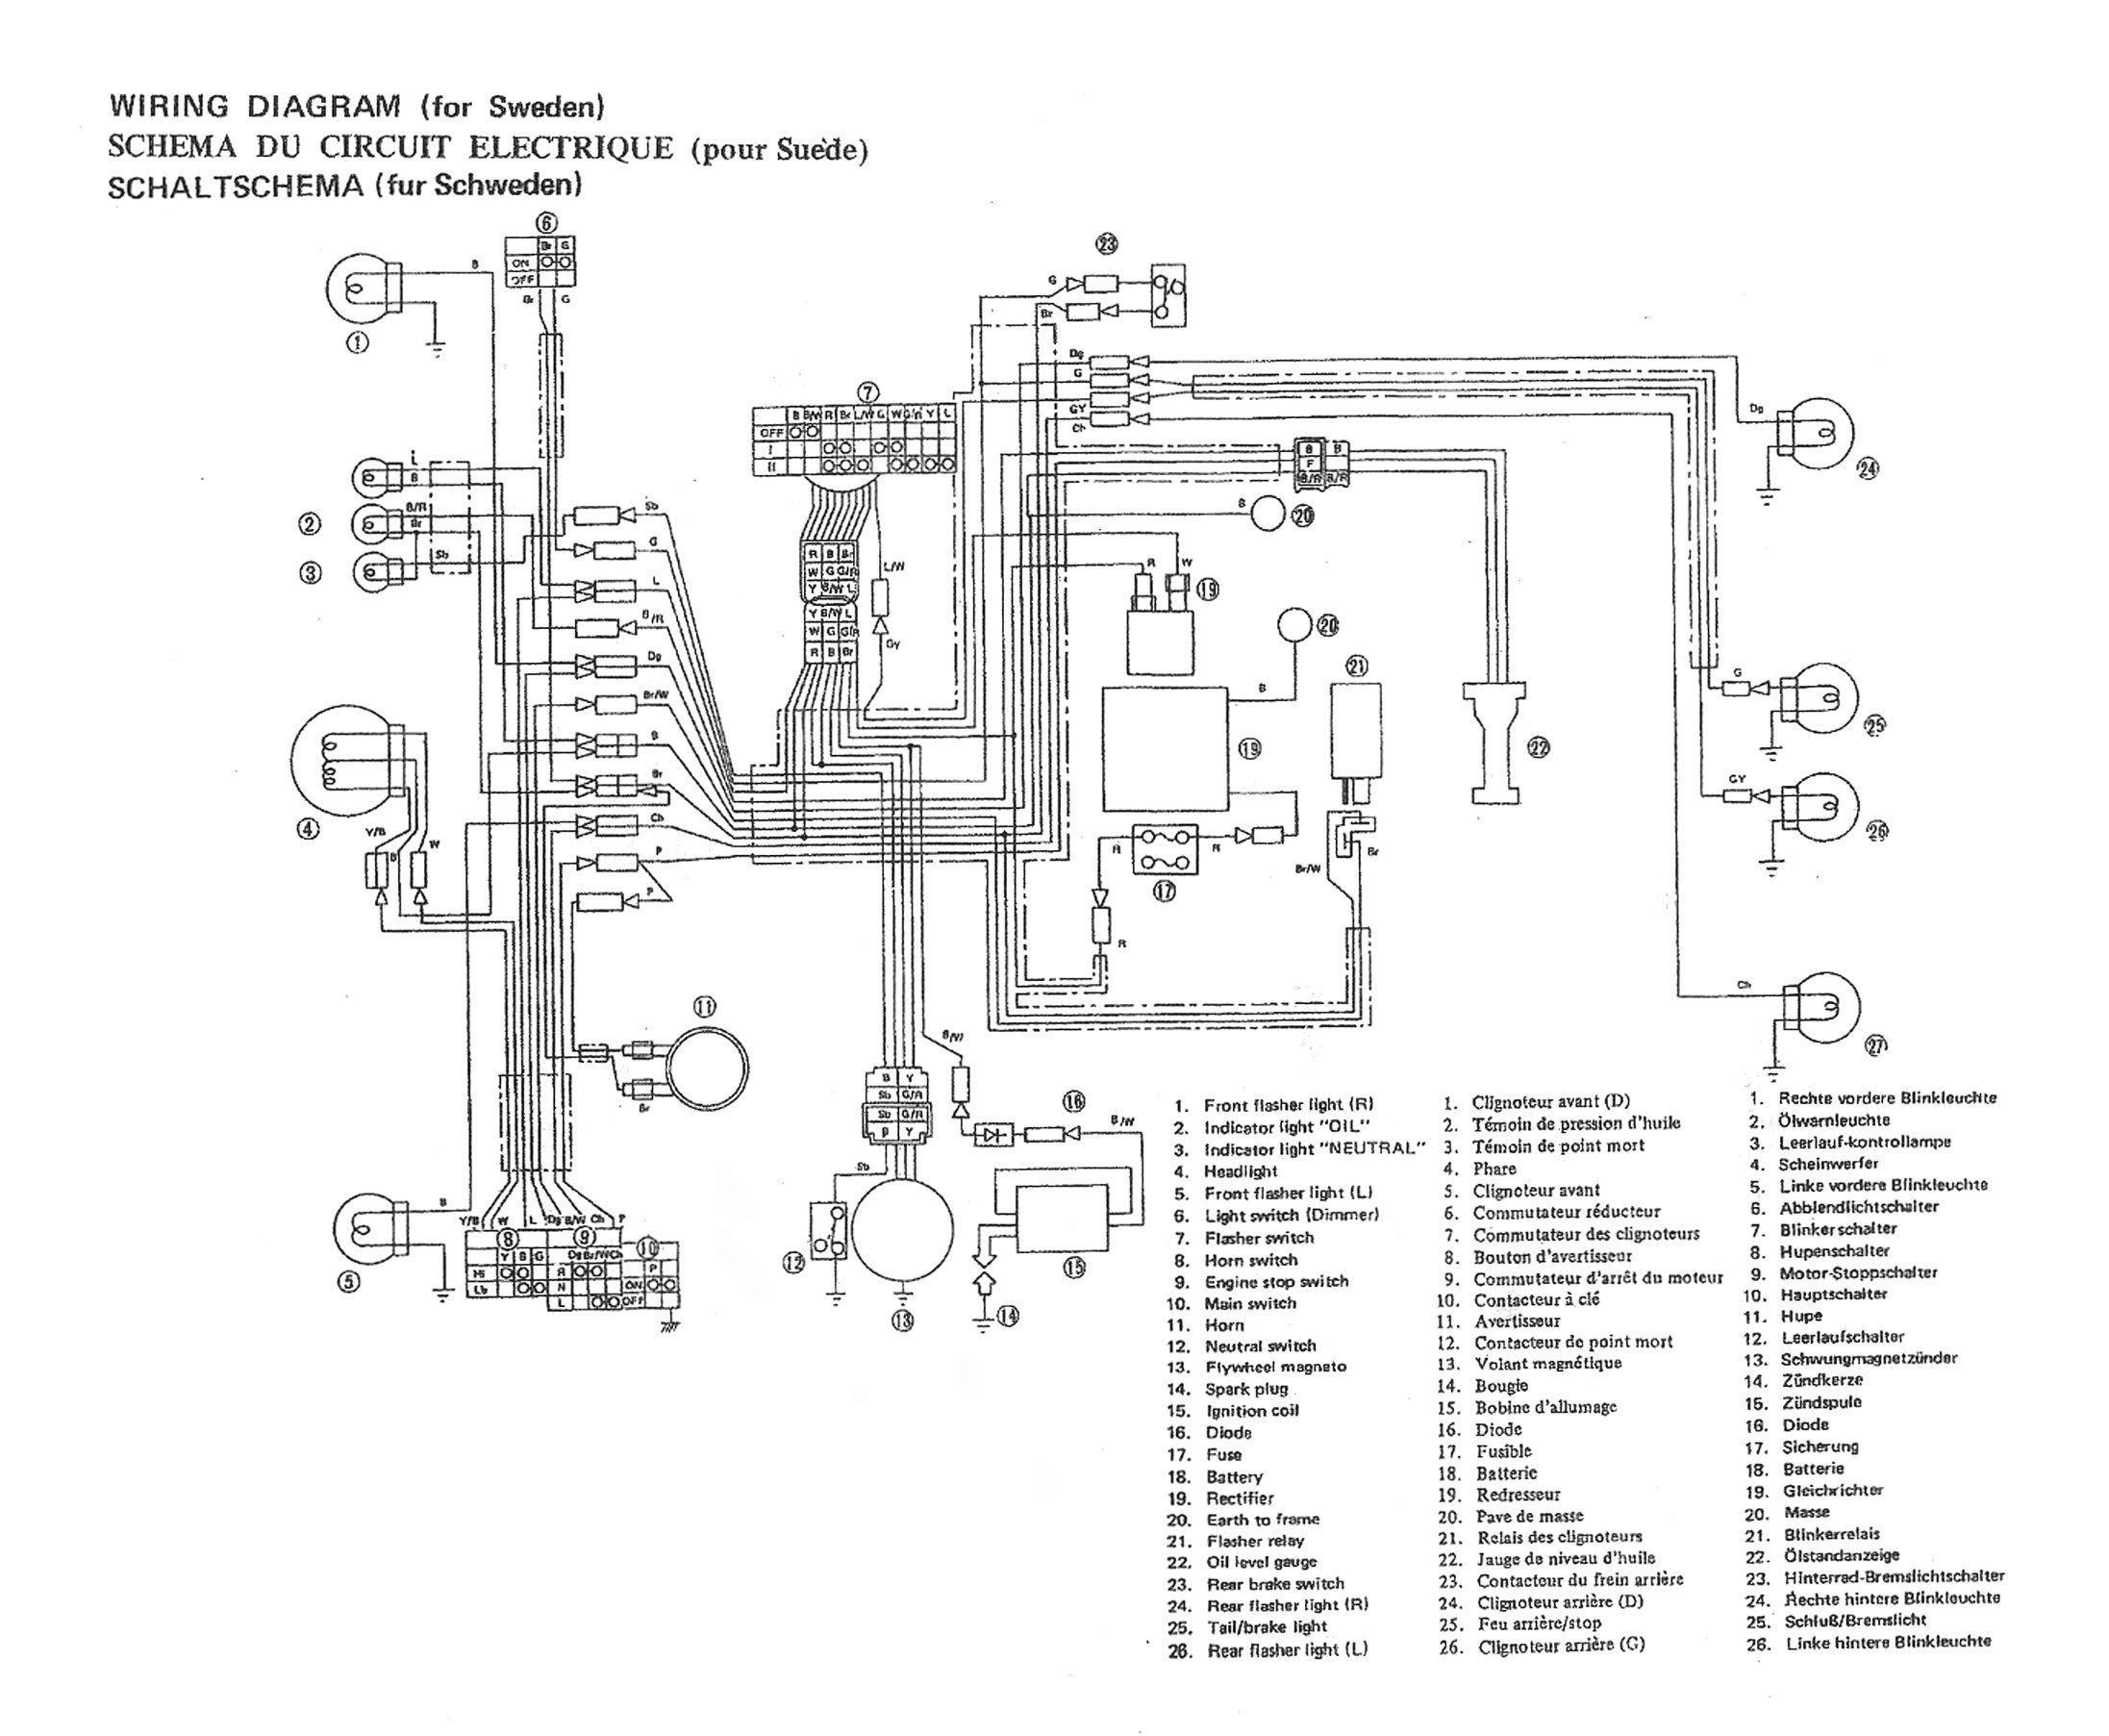 Diagram Of 2 Stroke Engine Stroke Scooter Wiring Diagram Get Free Image About Wiring Diagram Of Diagram Of 2 Stroke Engine